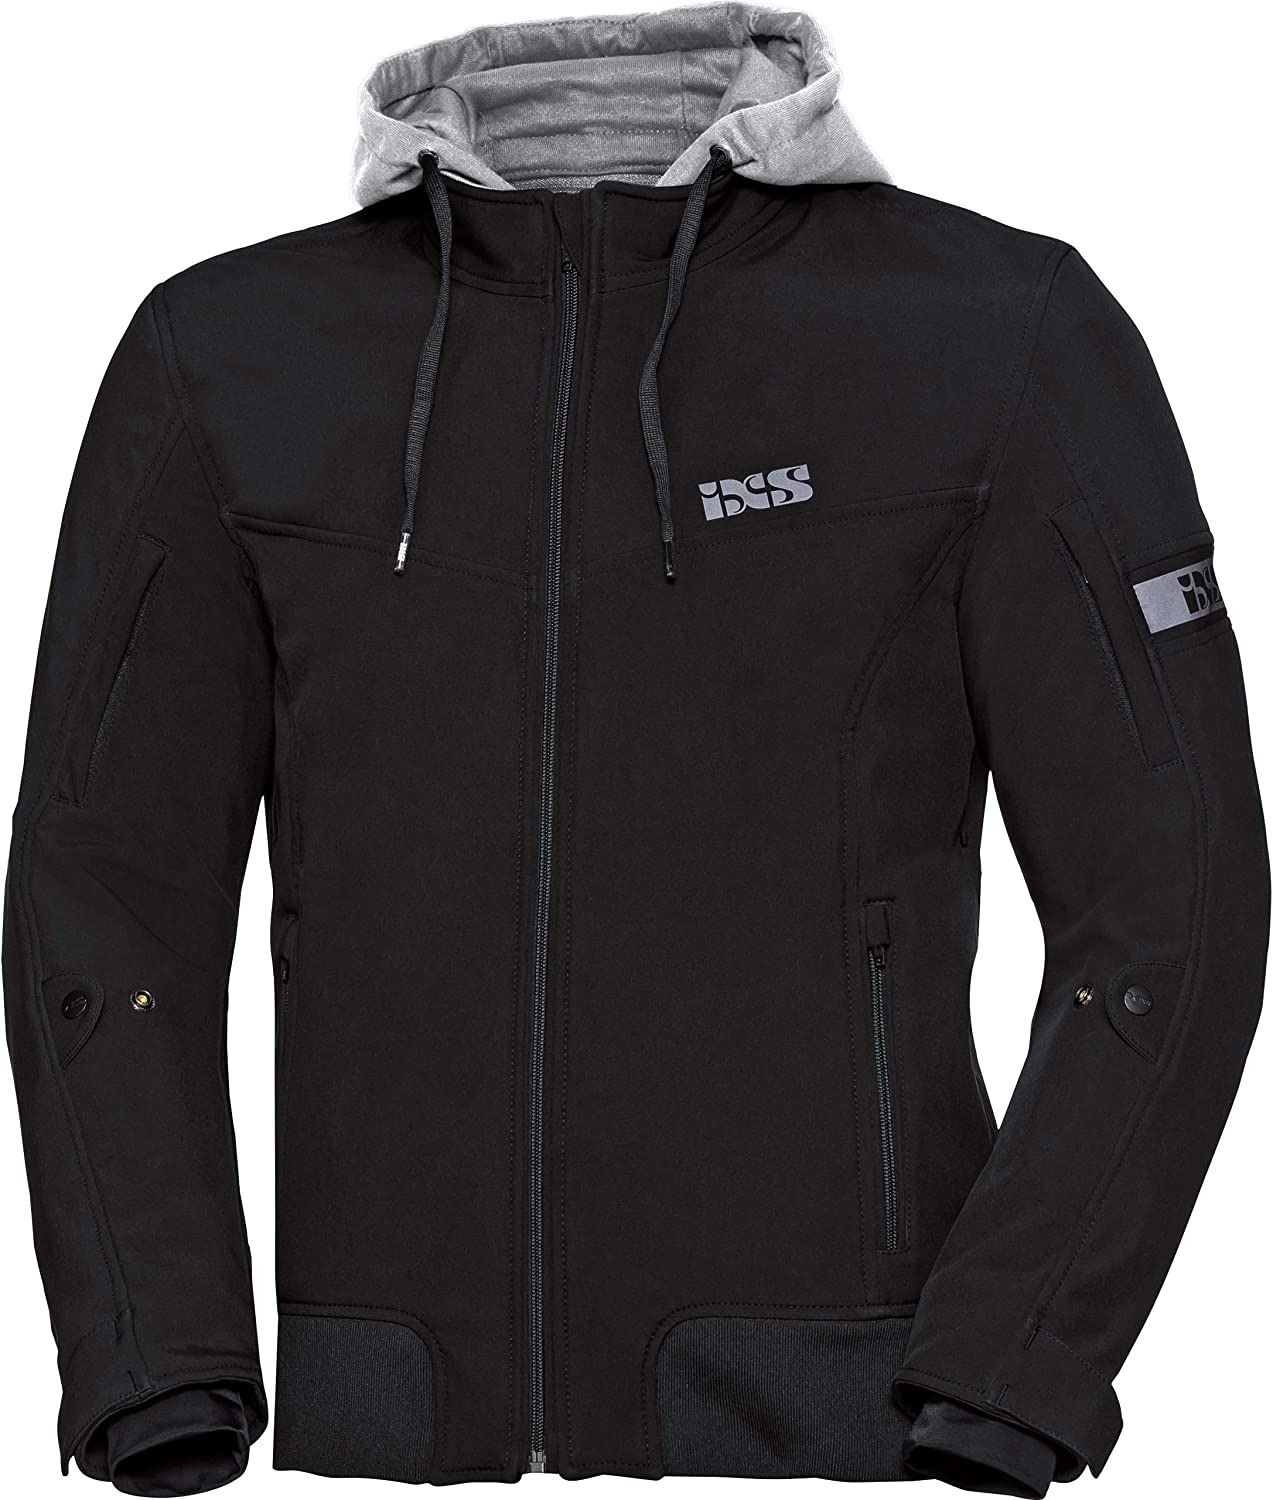 IXS Classic So Jacket Moto Black S